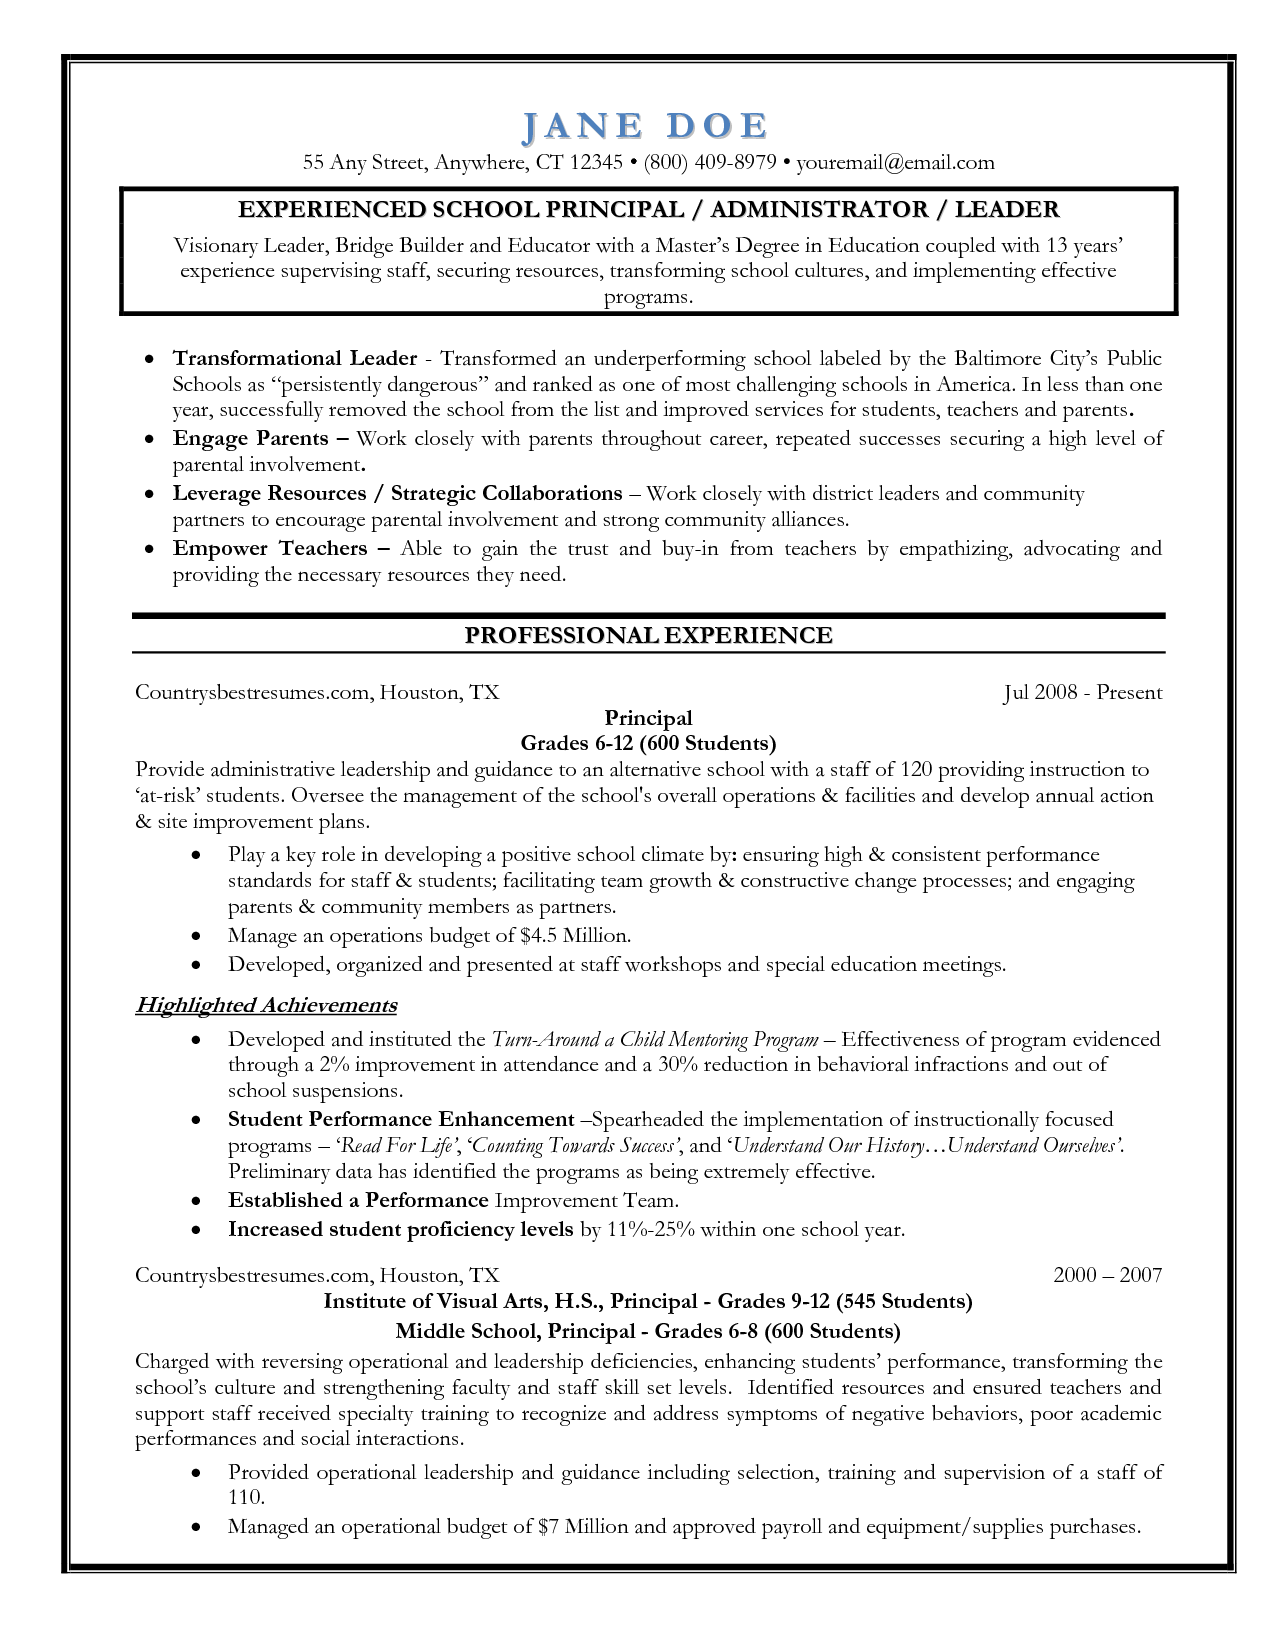 Administrator Resume Sample Entrylevel Assistant Principal Resume Templates  Senior Educator .